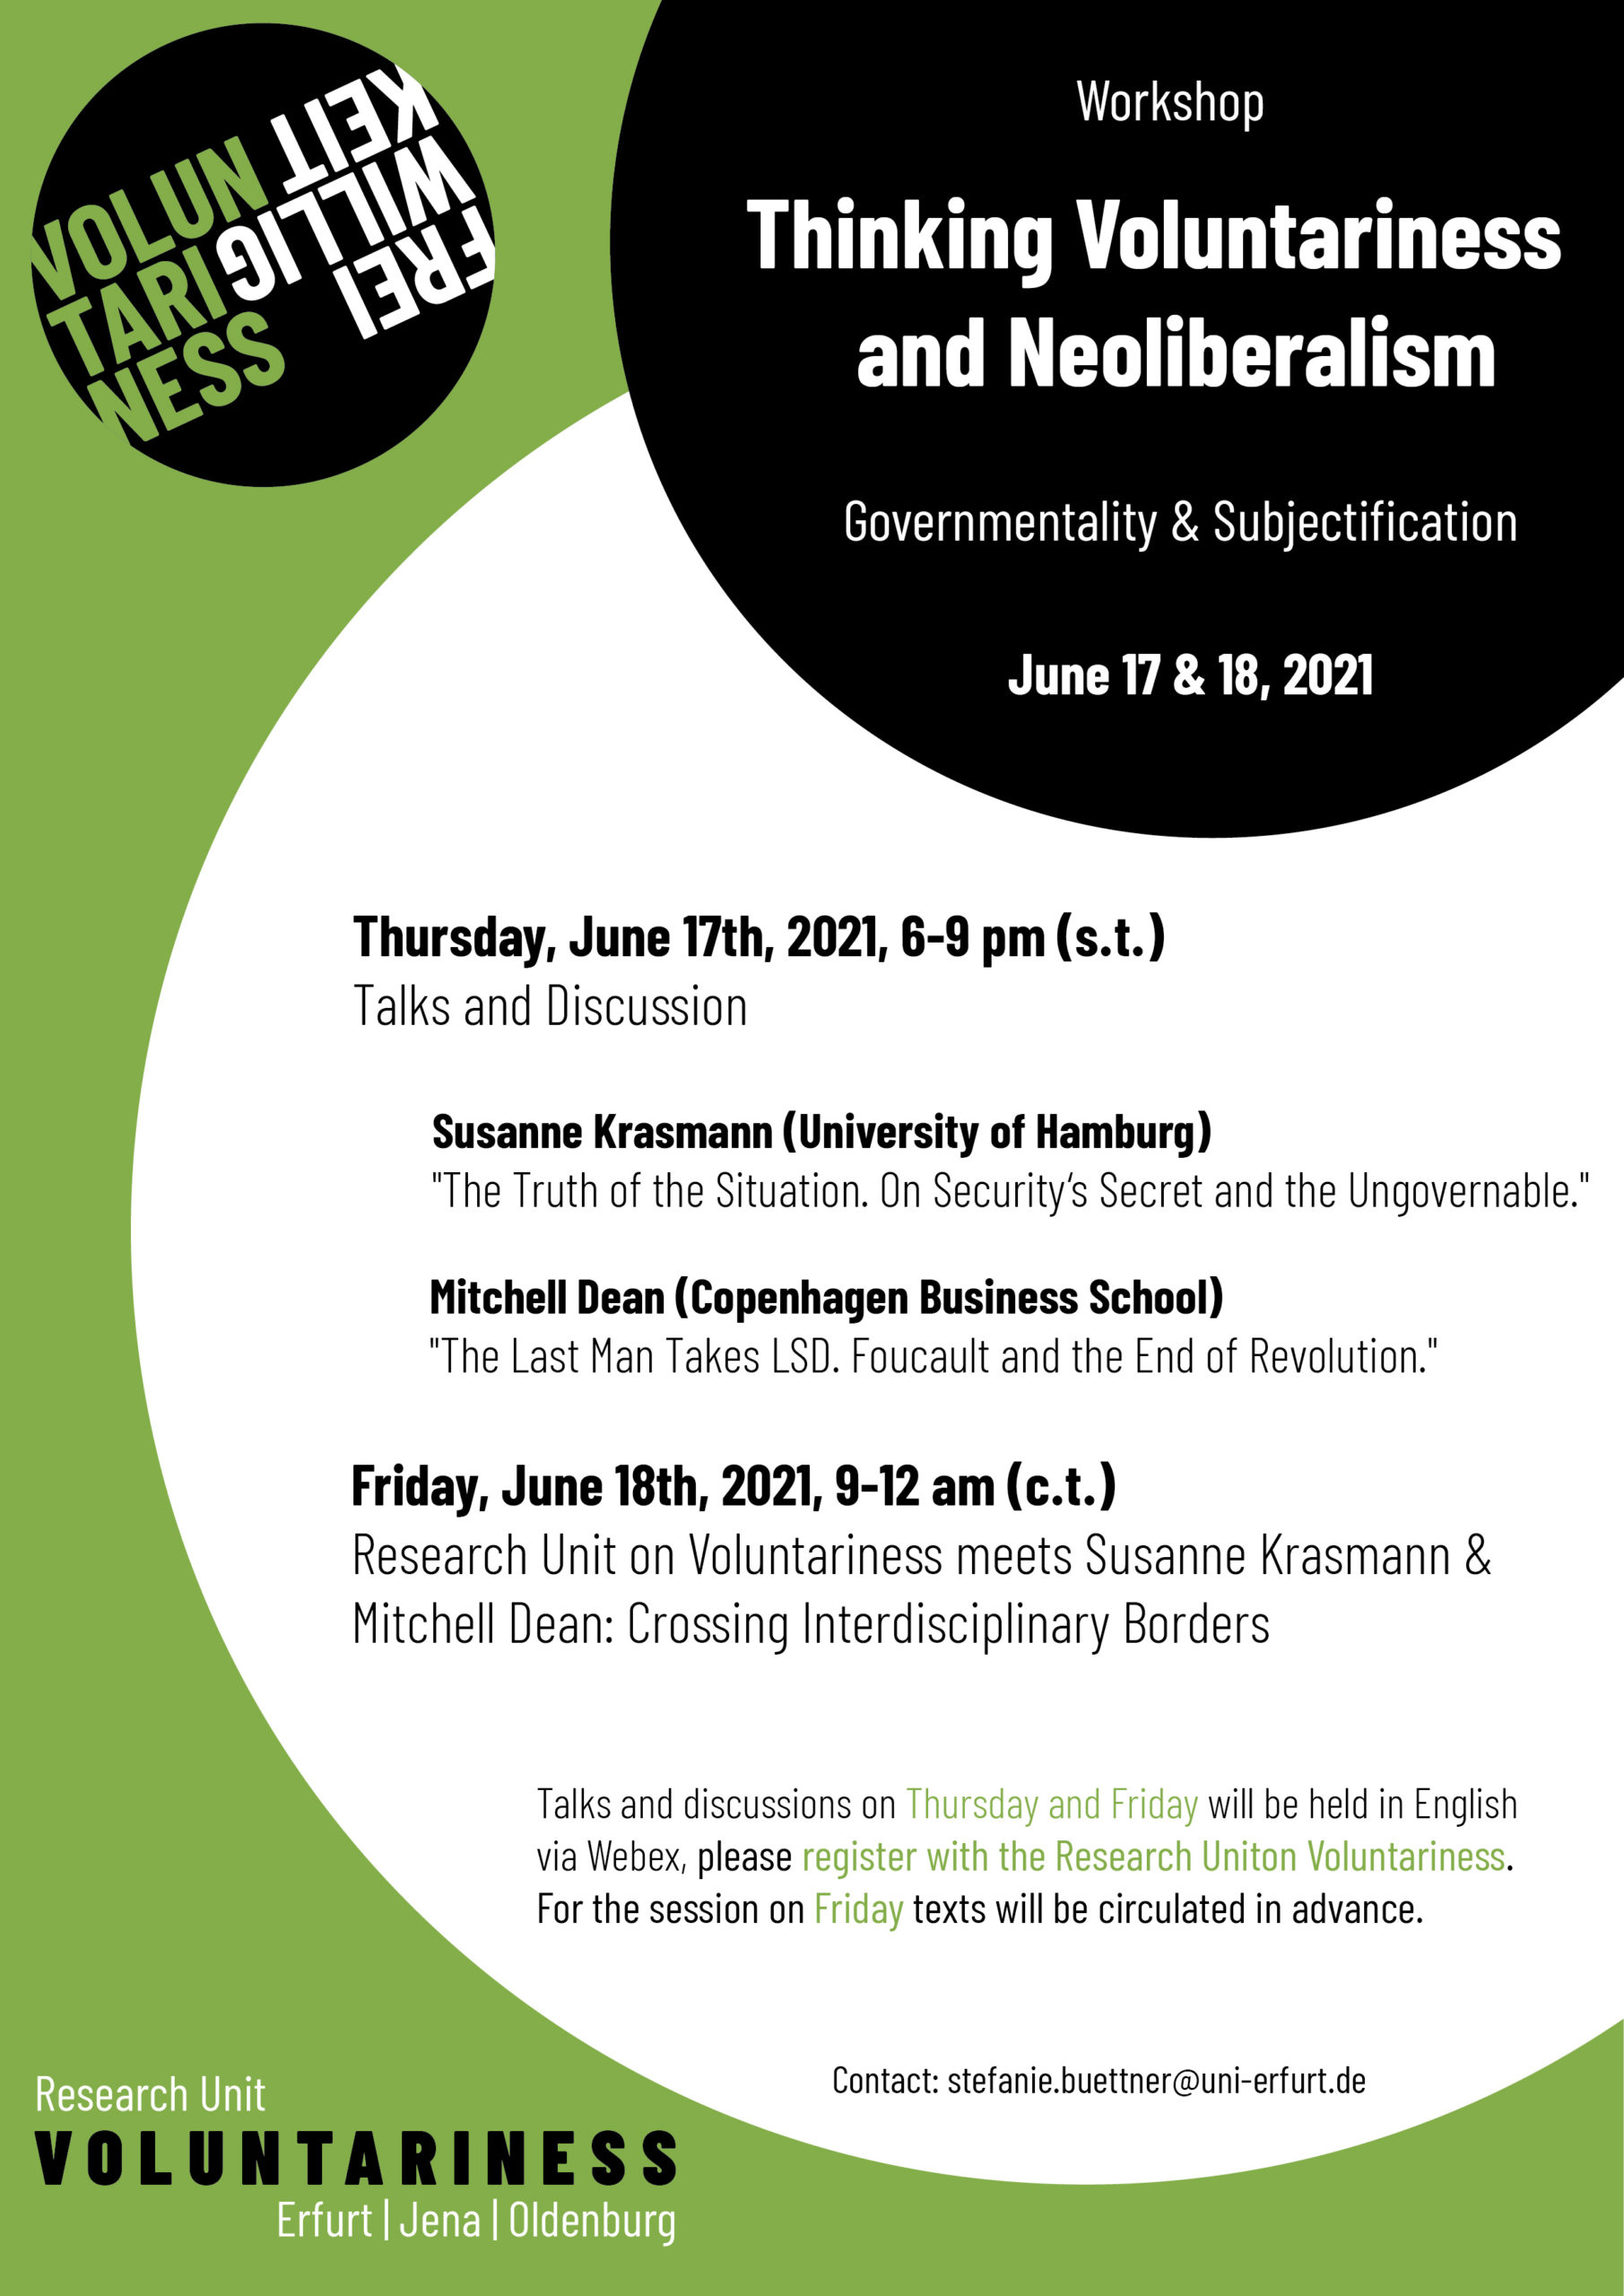 Outline Workshop Thinking Voluntariness and Neoliberalism